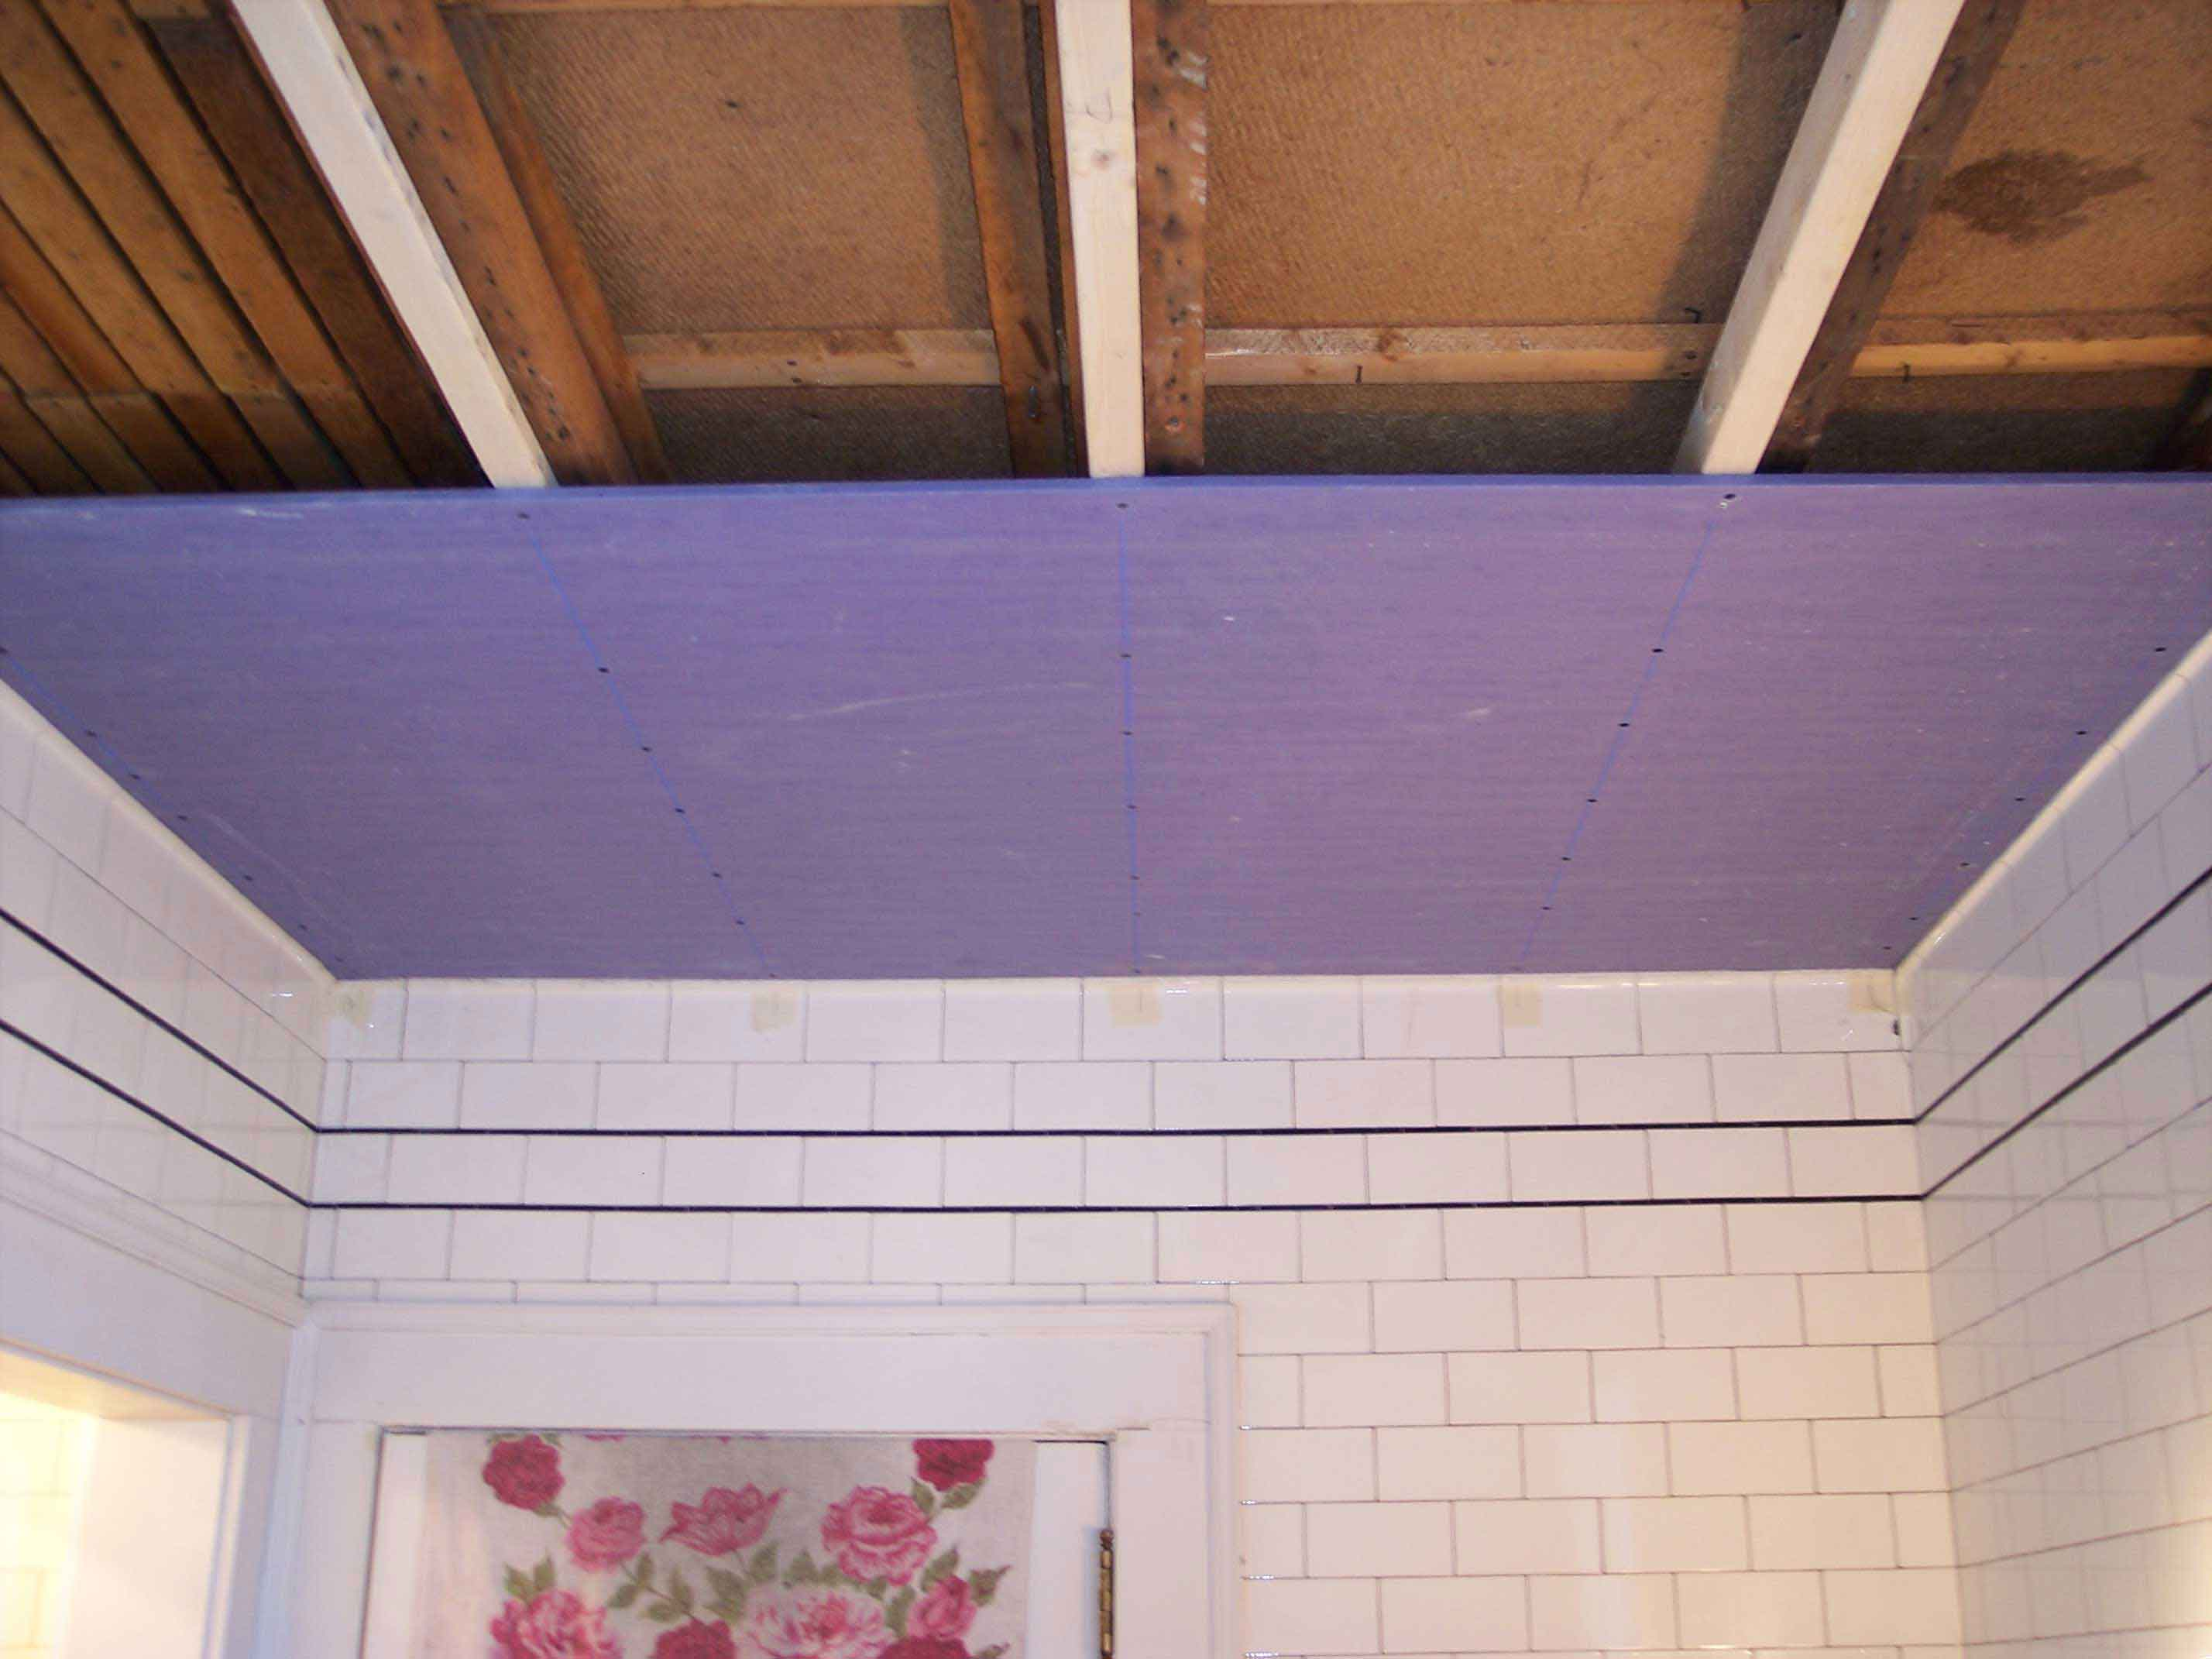 Drywall Ceiling In An Old House That Meets Tiled Walls. - Drywall ...